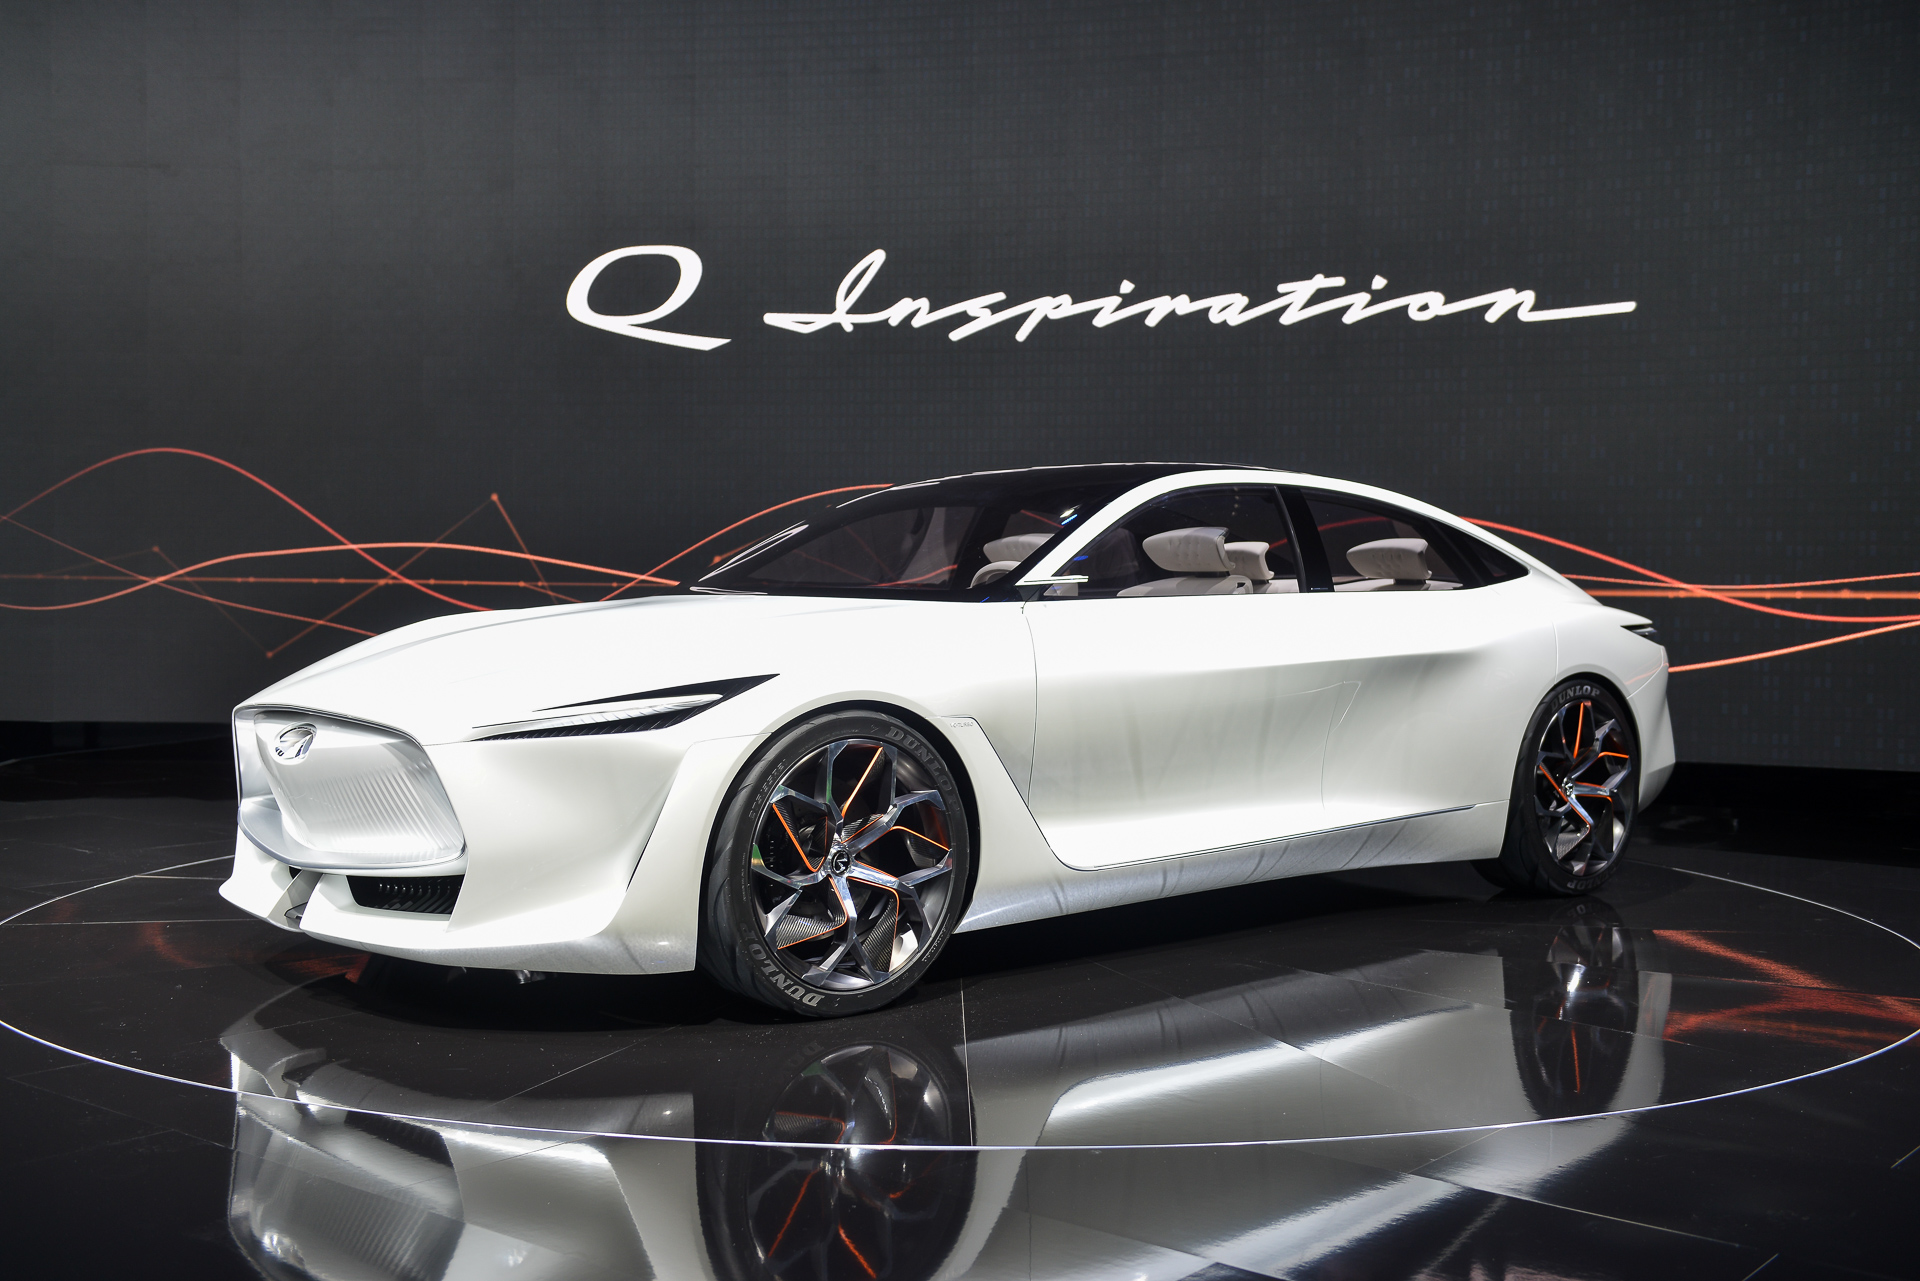 Infiniti Q Inspiration concept debuts new look, not much else